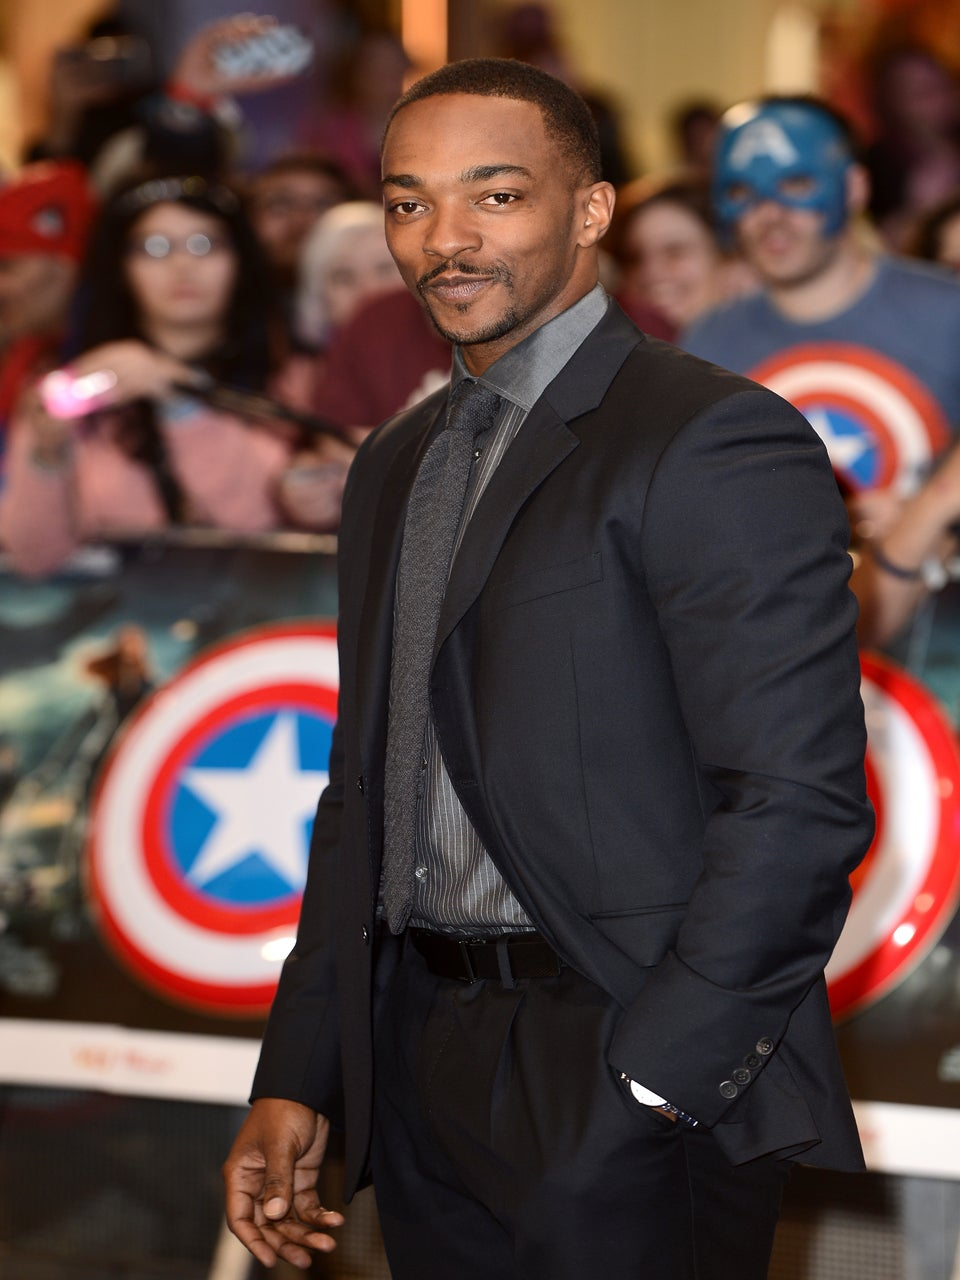 Anthony Mackie on Endorsing Donald Trump: 'Just a Bad Attempt at a Joke'